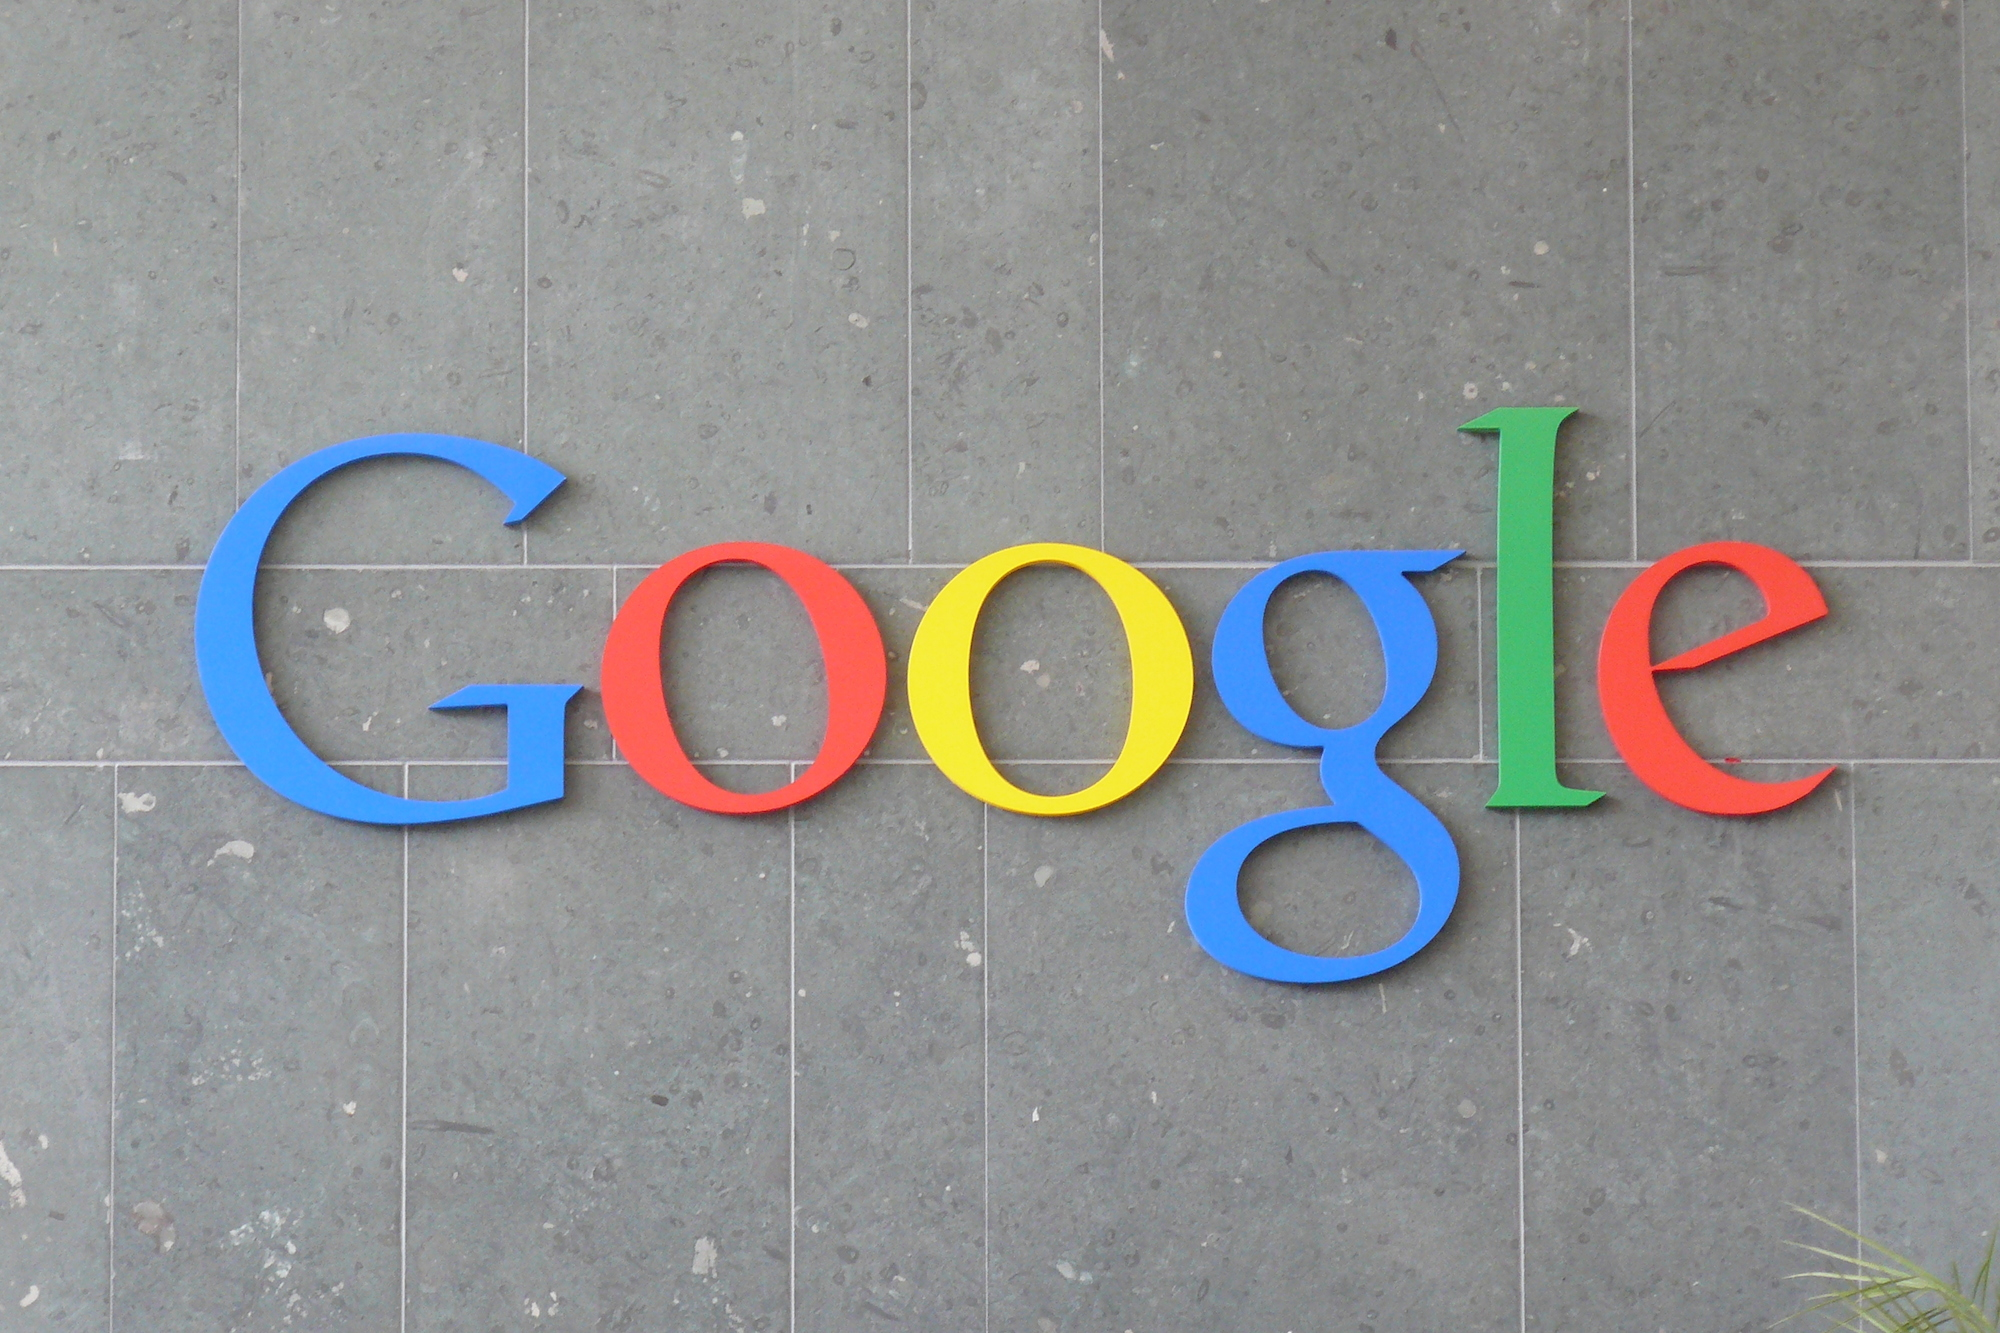 two-minute-guide-to-google-plus